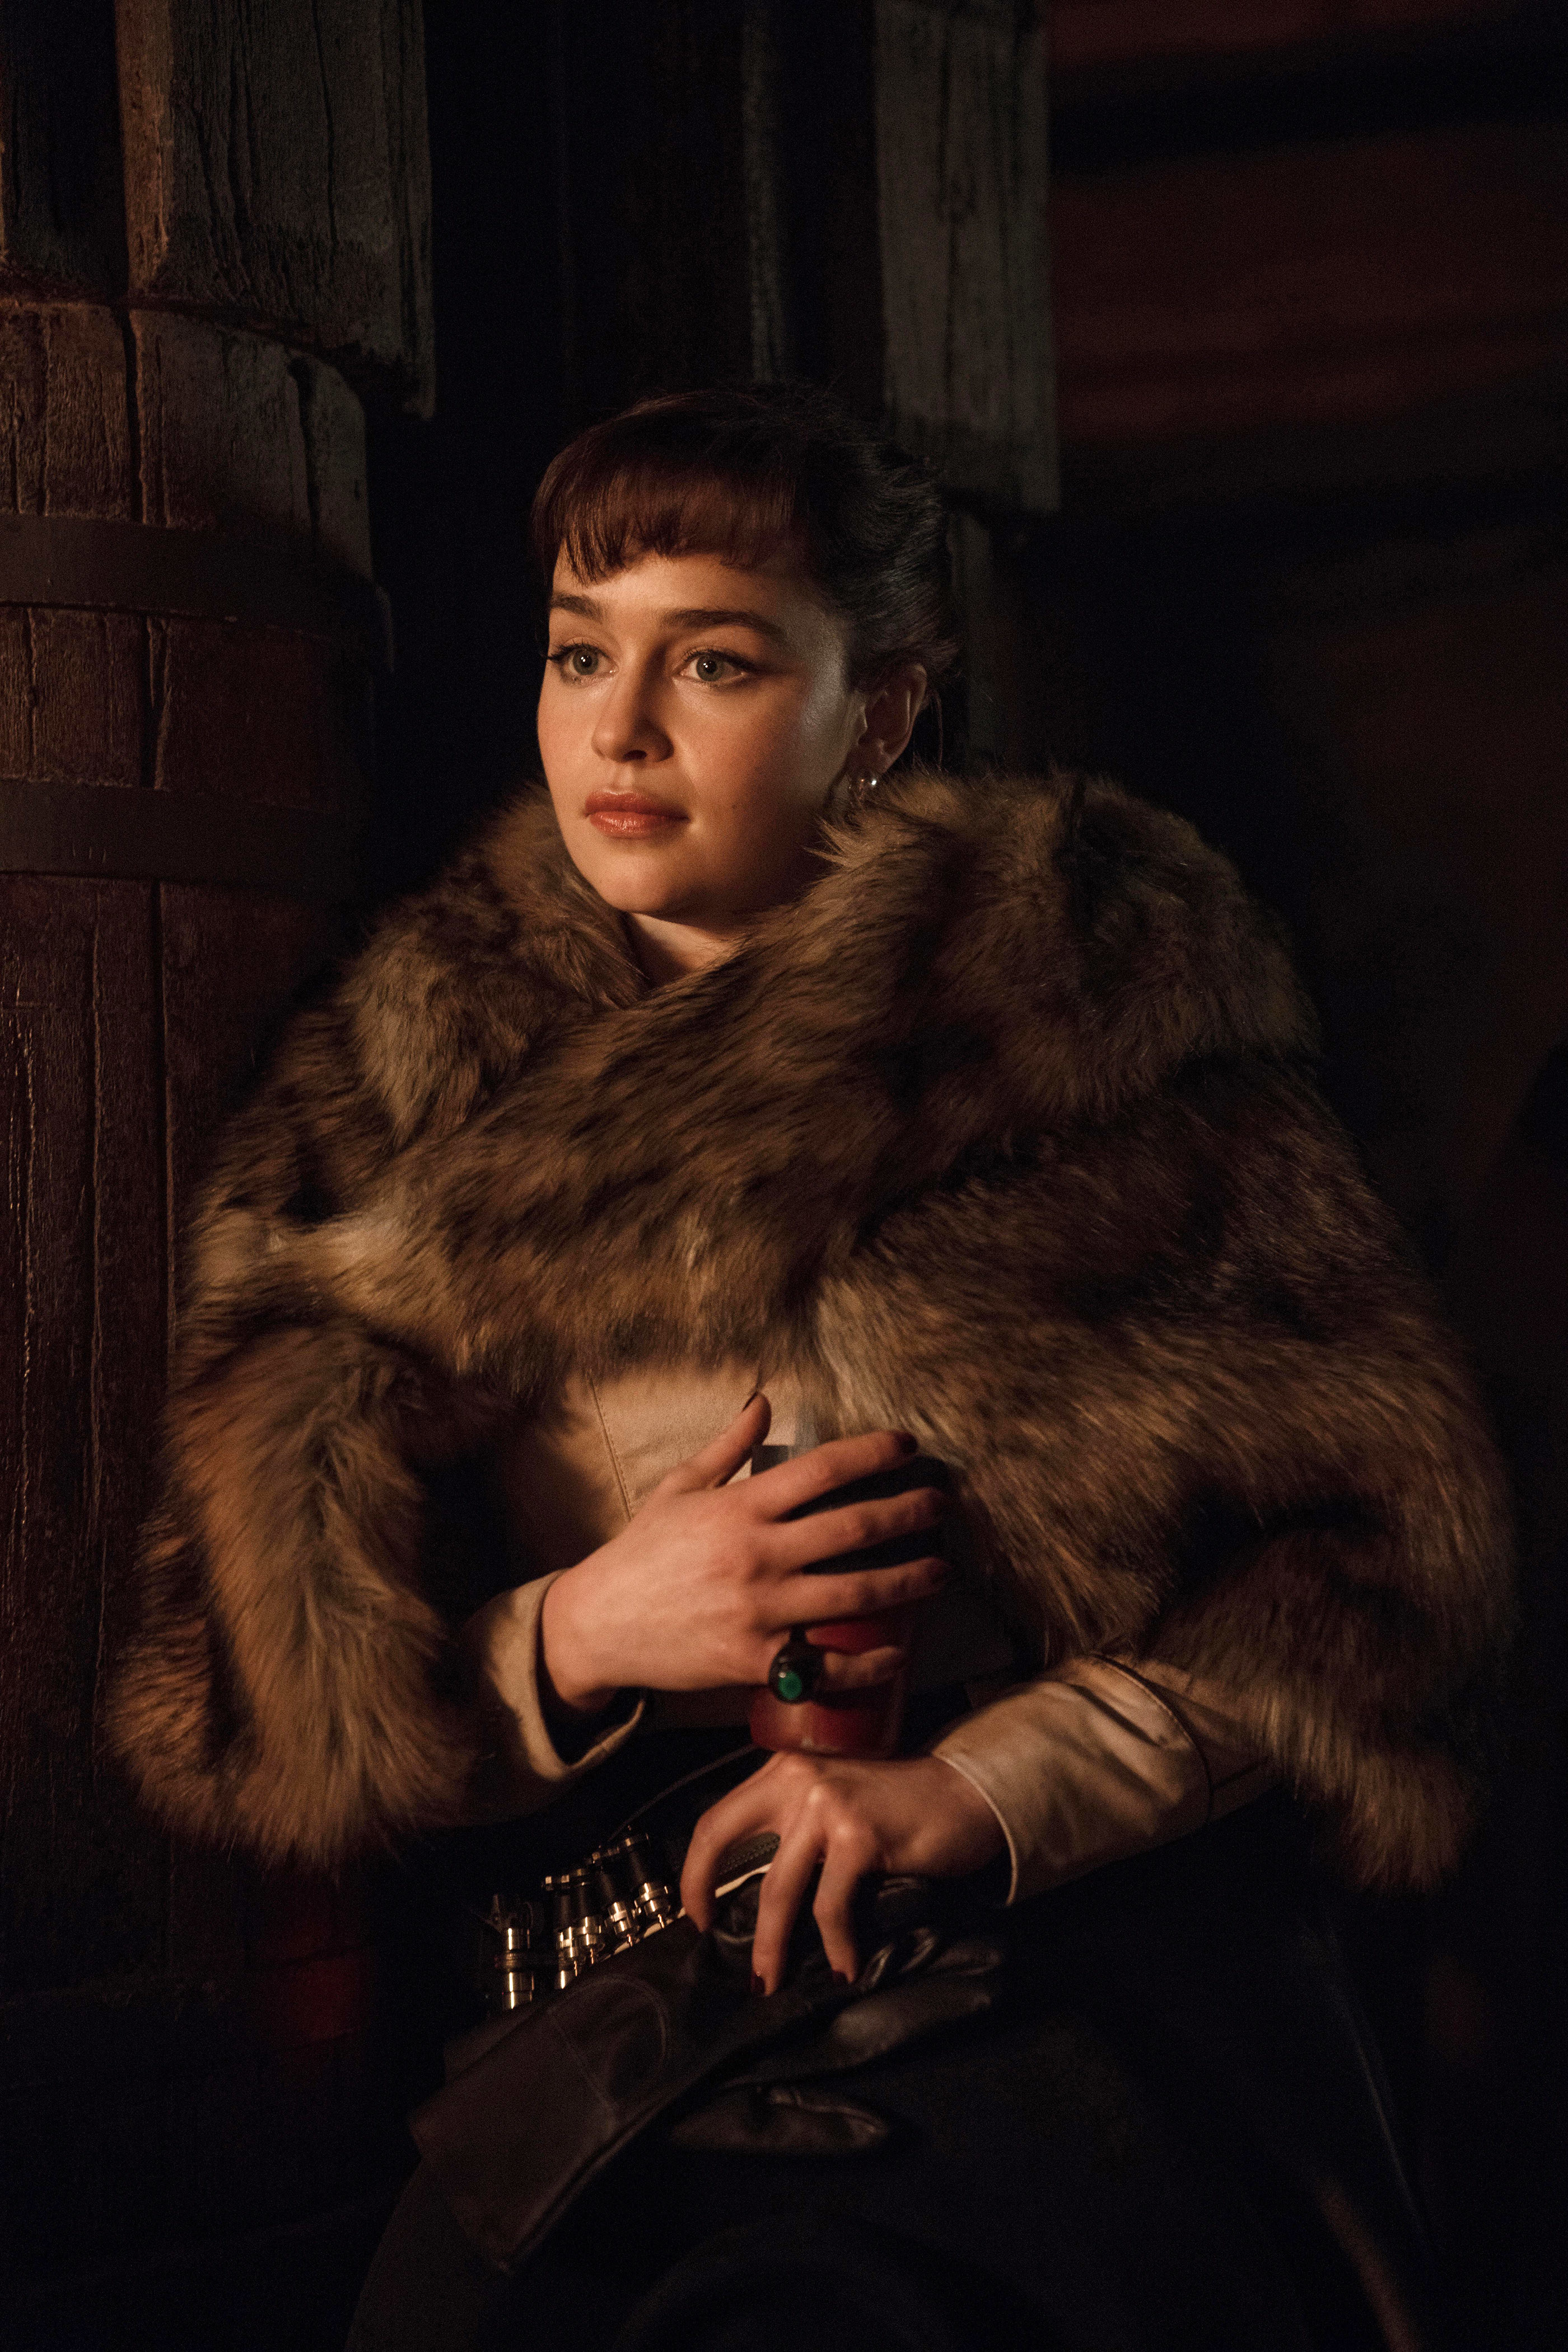 """Emilia Clarke poses in fur as Qi'ra in """"Solo: A Star Wars Story"""""""